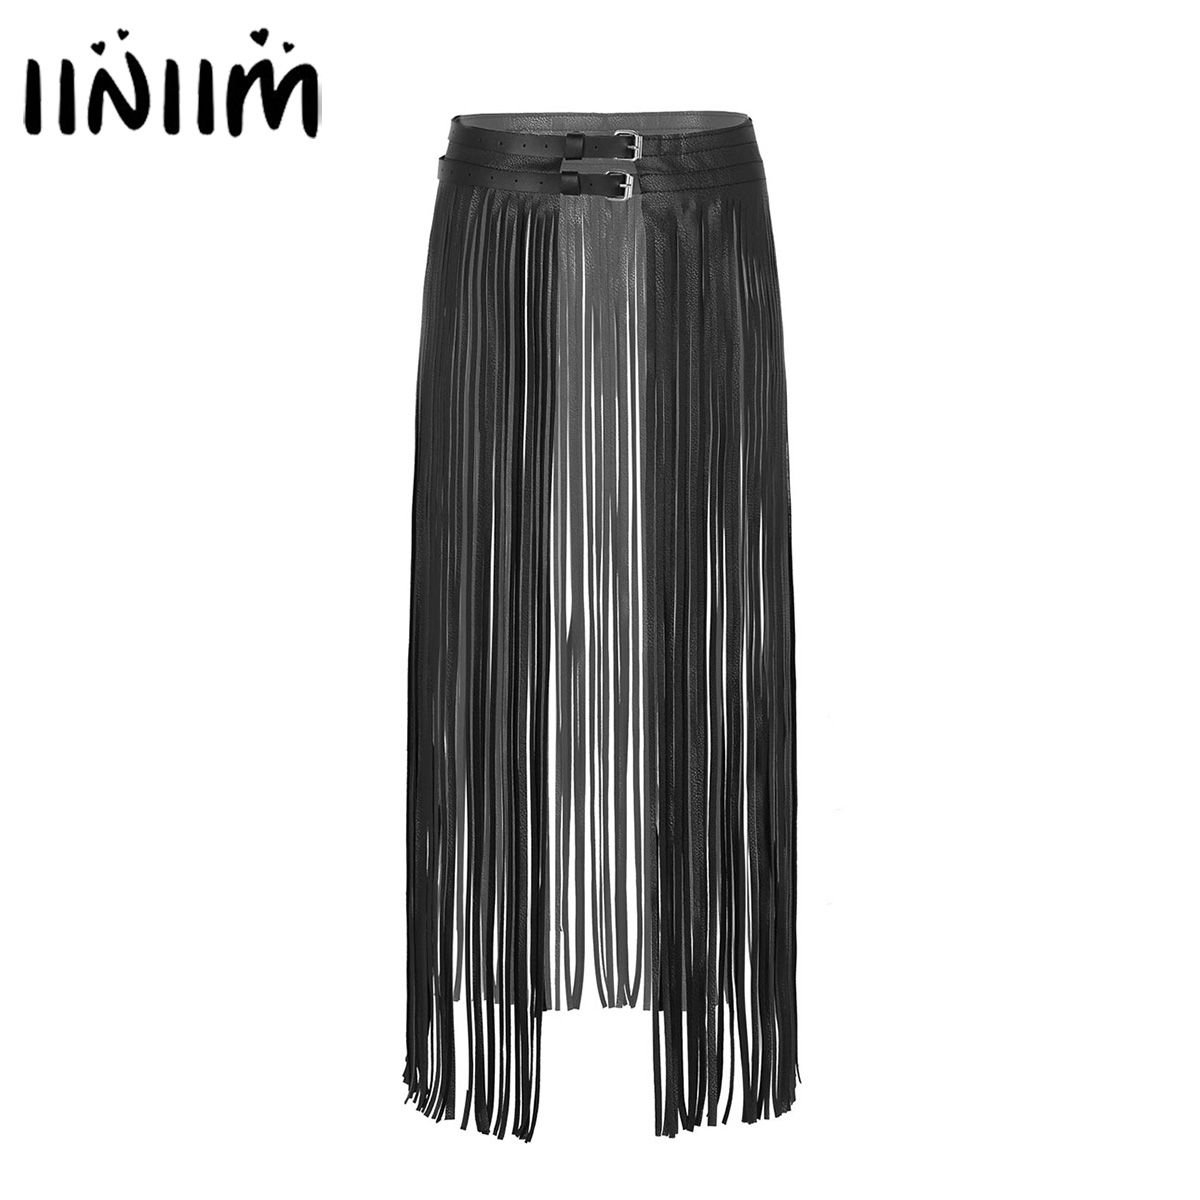 Women Ladies Fashion Clubwear Leather Buckles Gothic Punk Long Fringe Tassel Skirt Belt Nightclub Costume Cosplay Parties Skirts